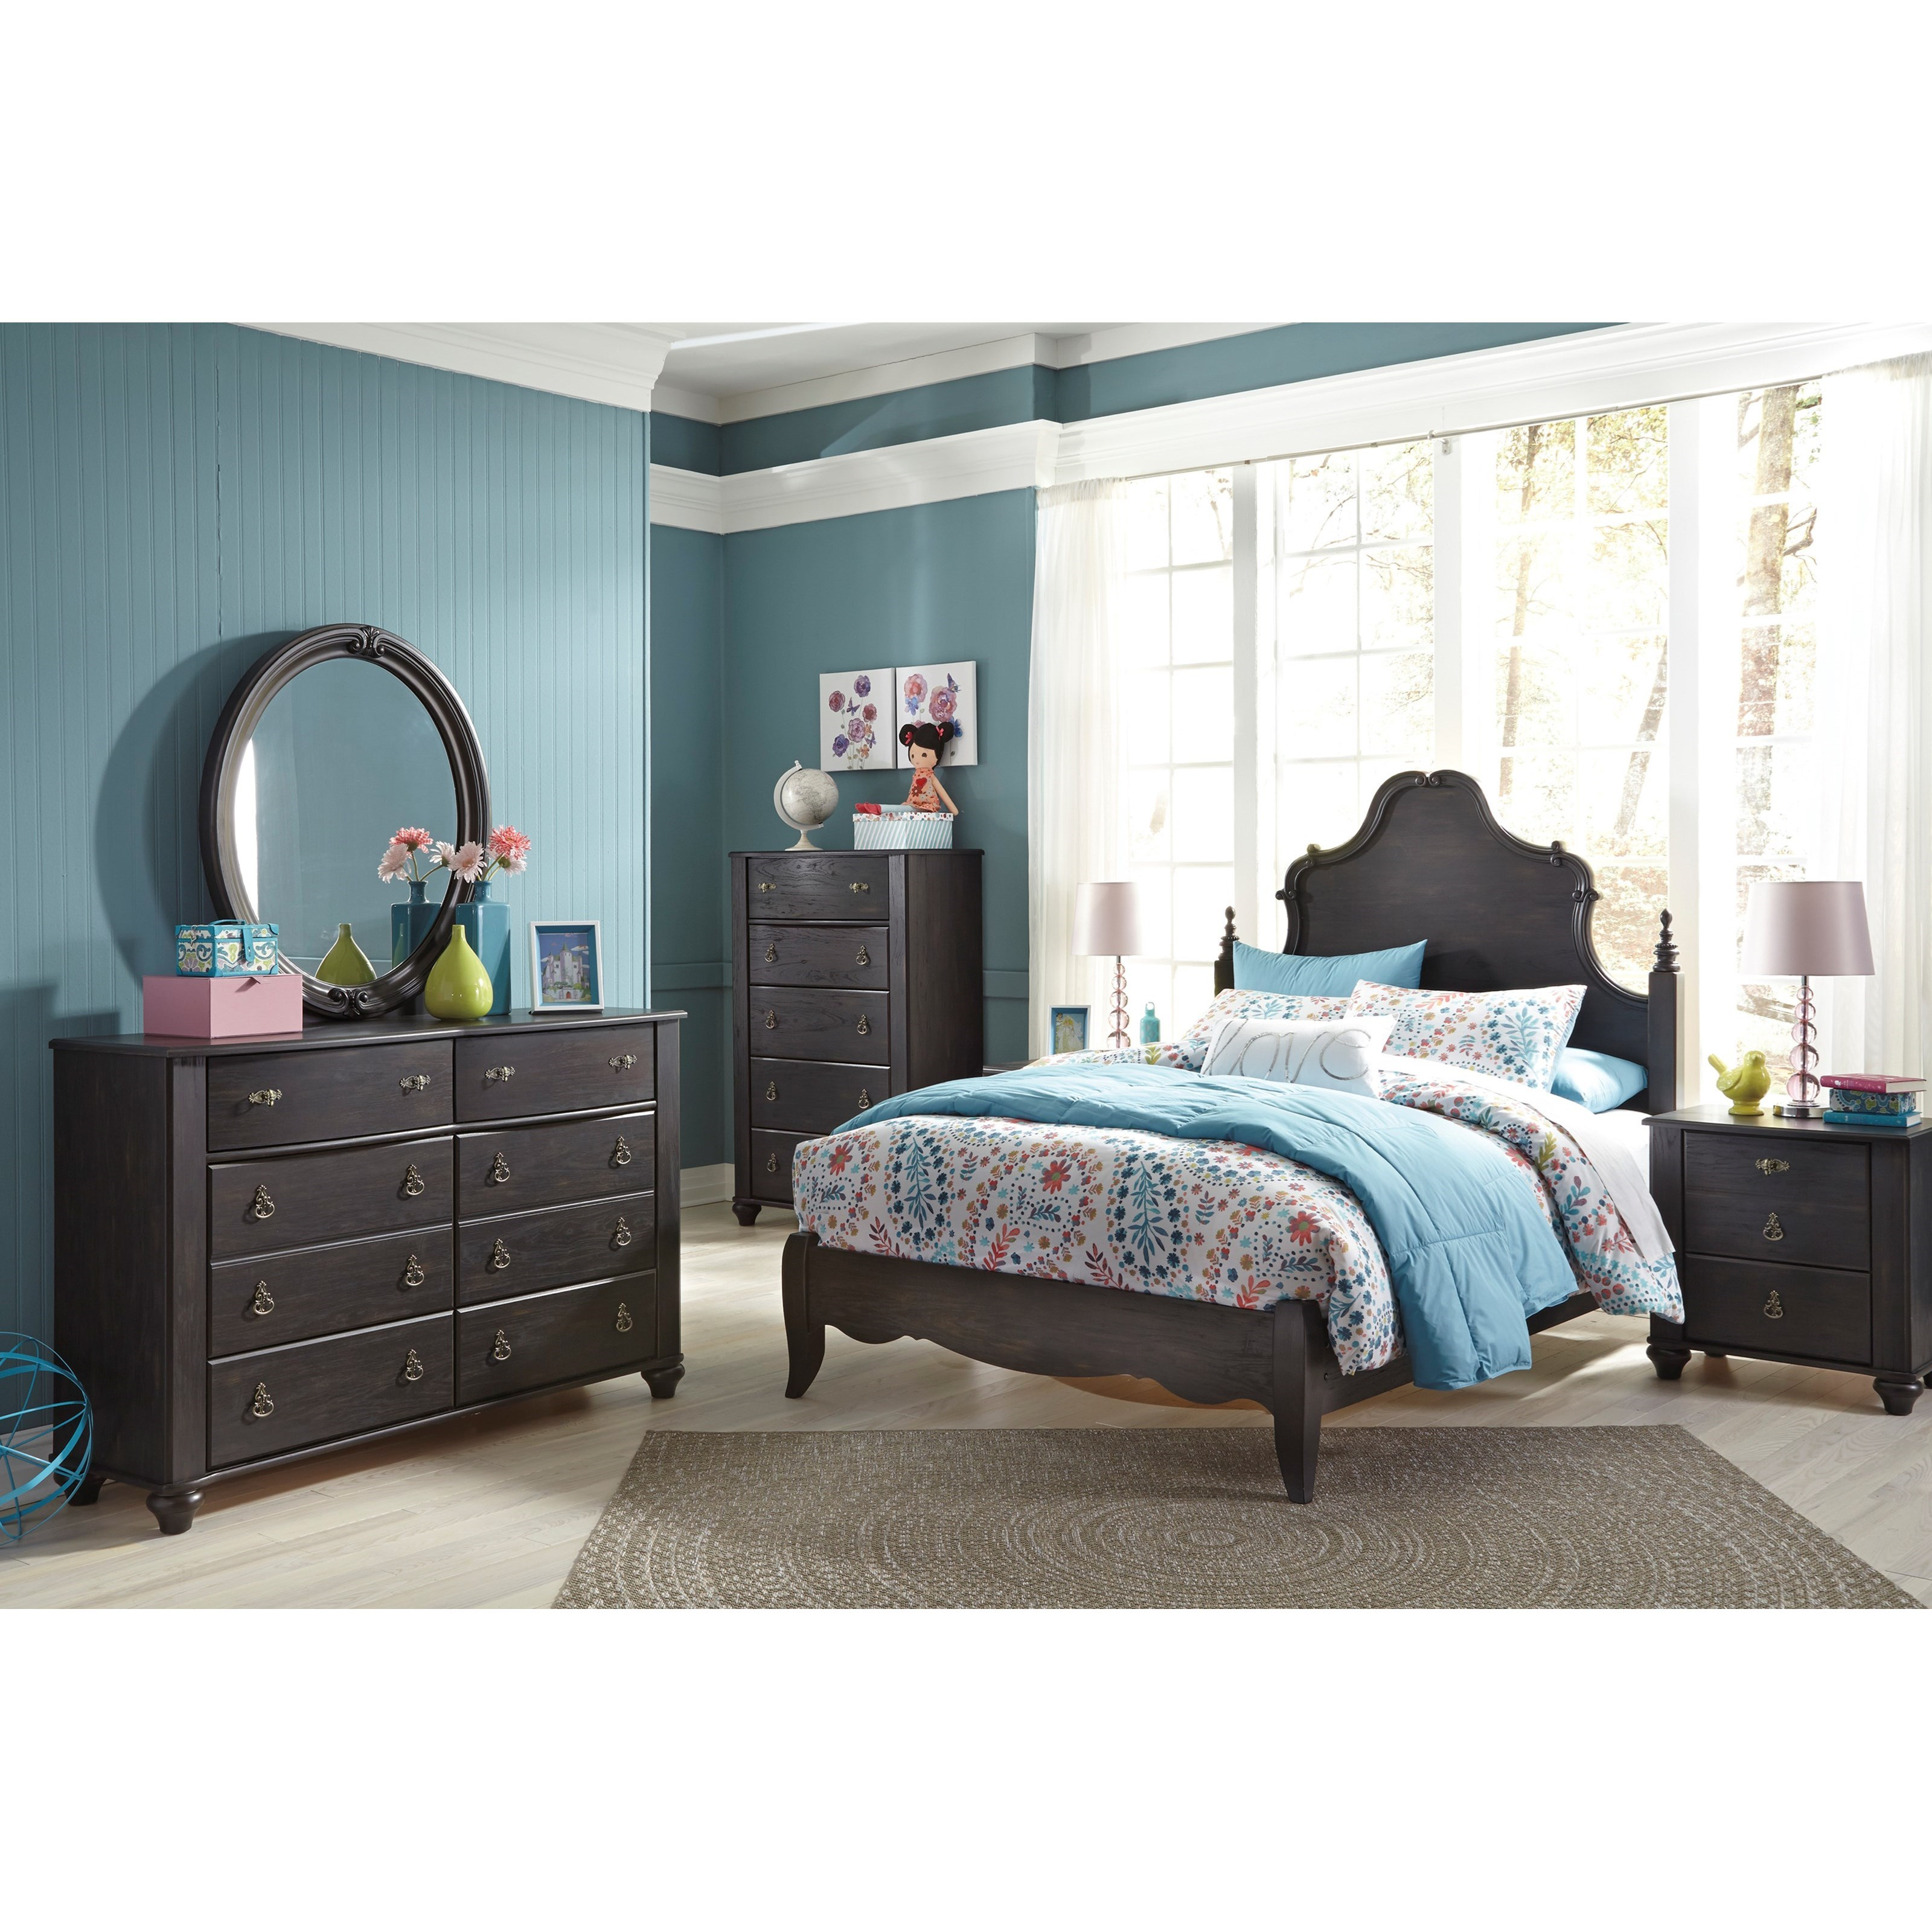 Signature design by ashley corilyn full bedroom group for Bedroom groups